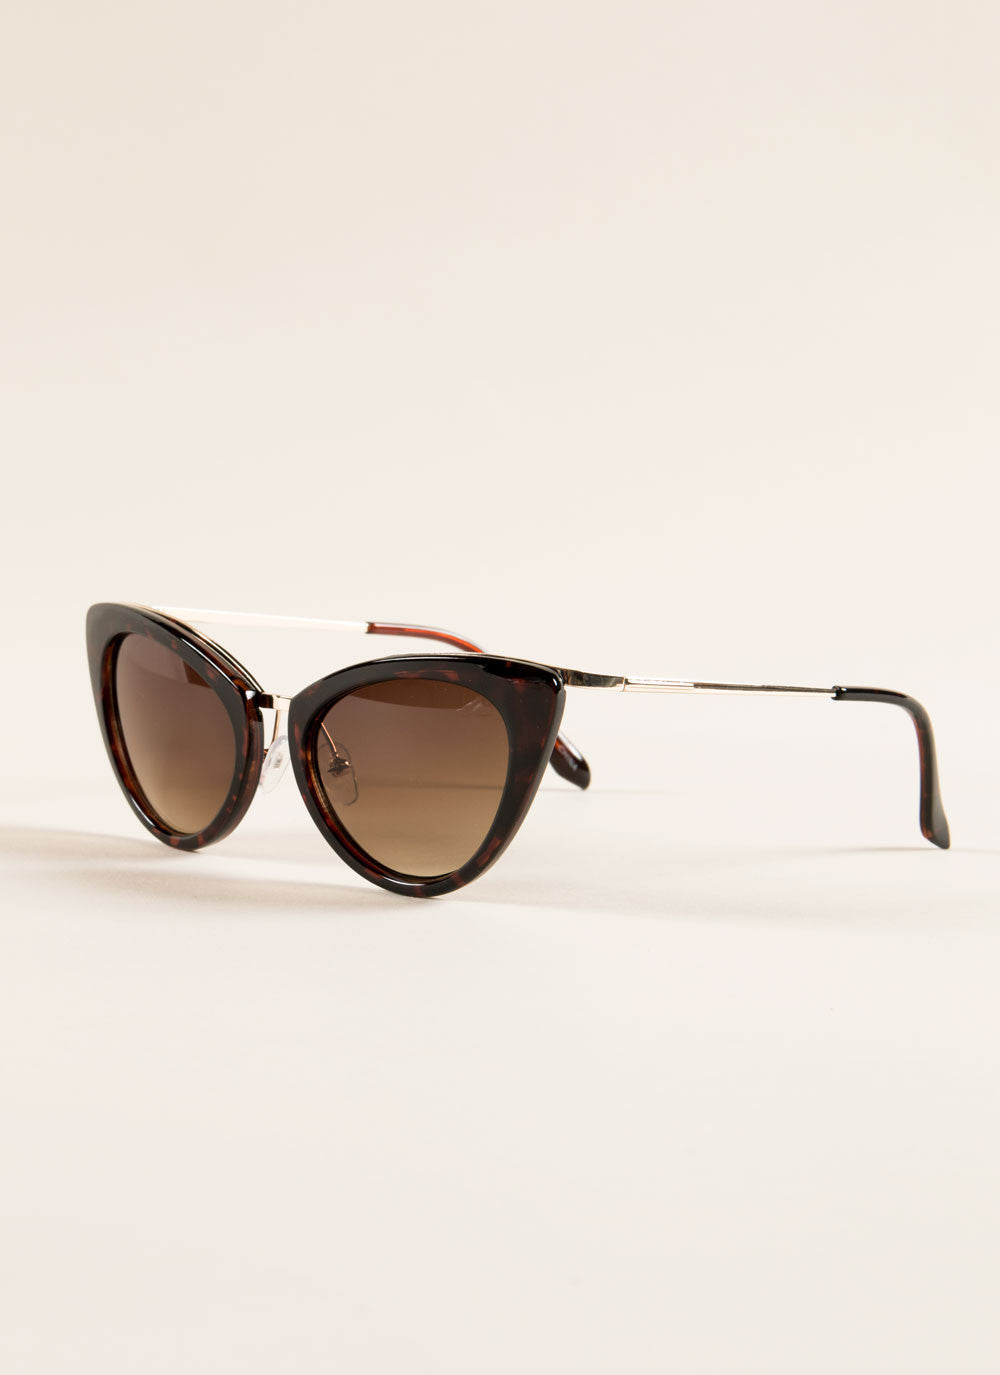 Hollywood Cat Eye Sunglasses , Accessories - Fashion Trend LA, Fashion Trend LA  - 4